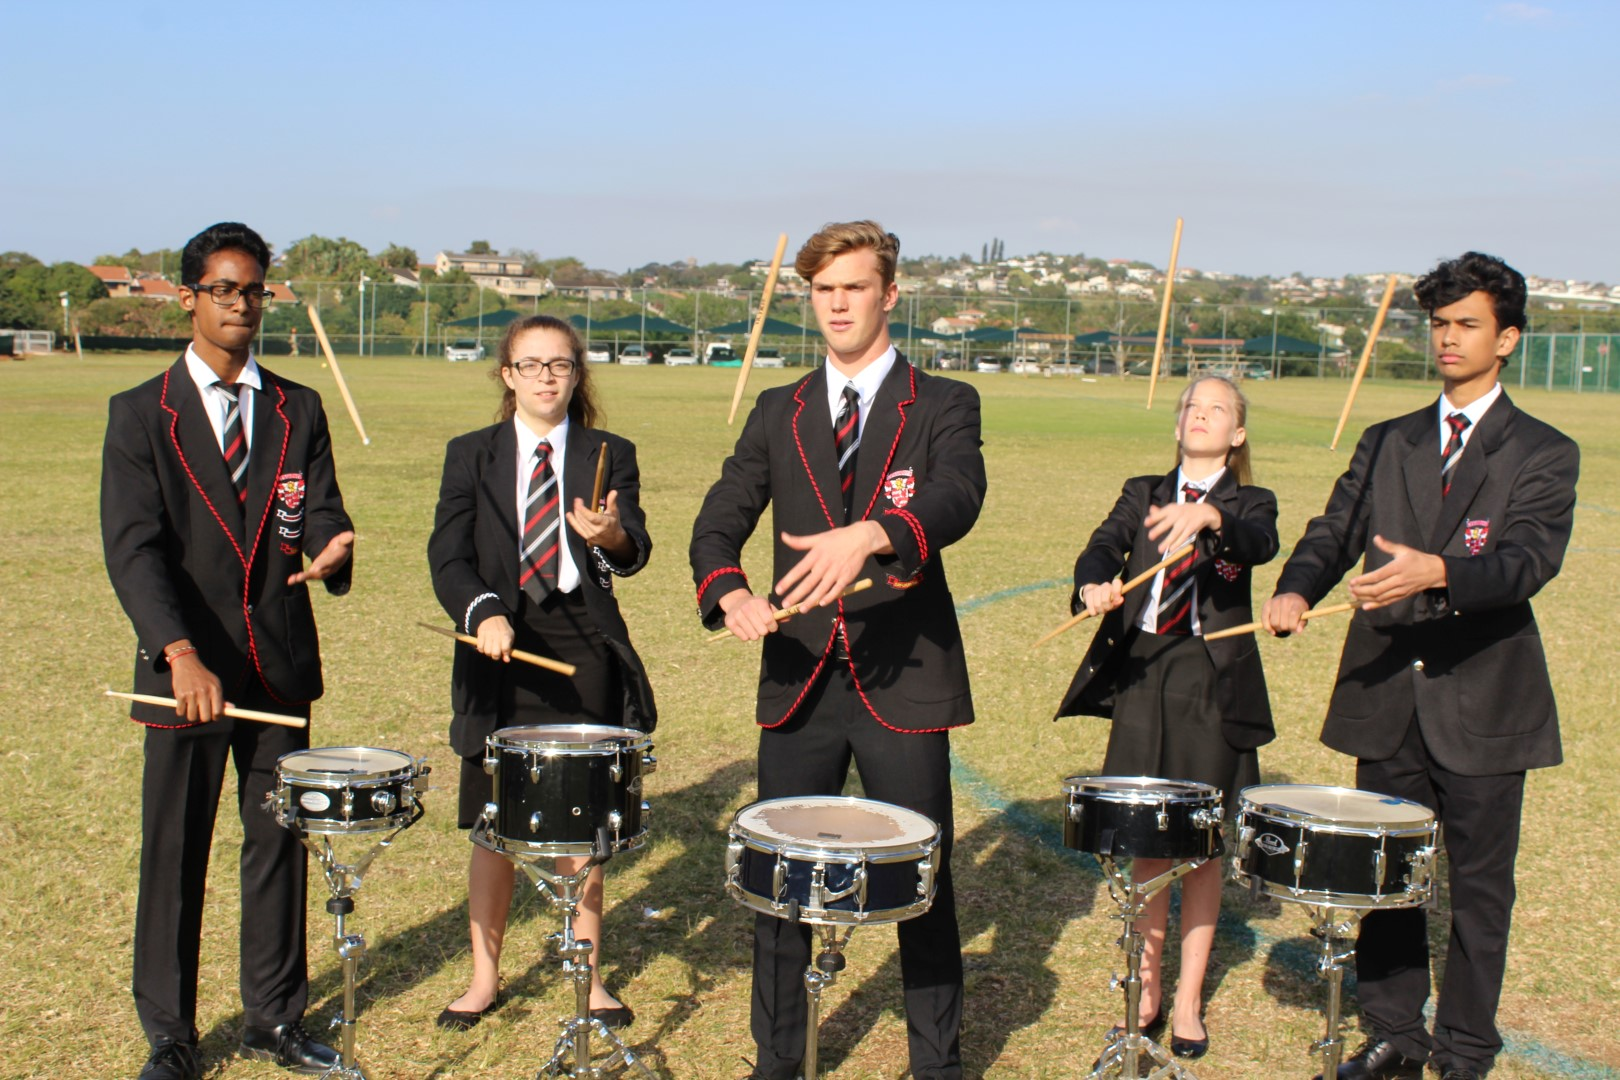 Crawford College La Lucia Drumline will be performing at this years Hilton Arts Festival. Prinalen Naidu, Zoe Meneses, Shane Maguire, Marta Todd and Shaunik Naidu are five of the 14 learners (from the prep school and the college) who will be at performing at the festival.